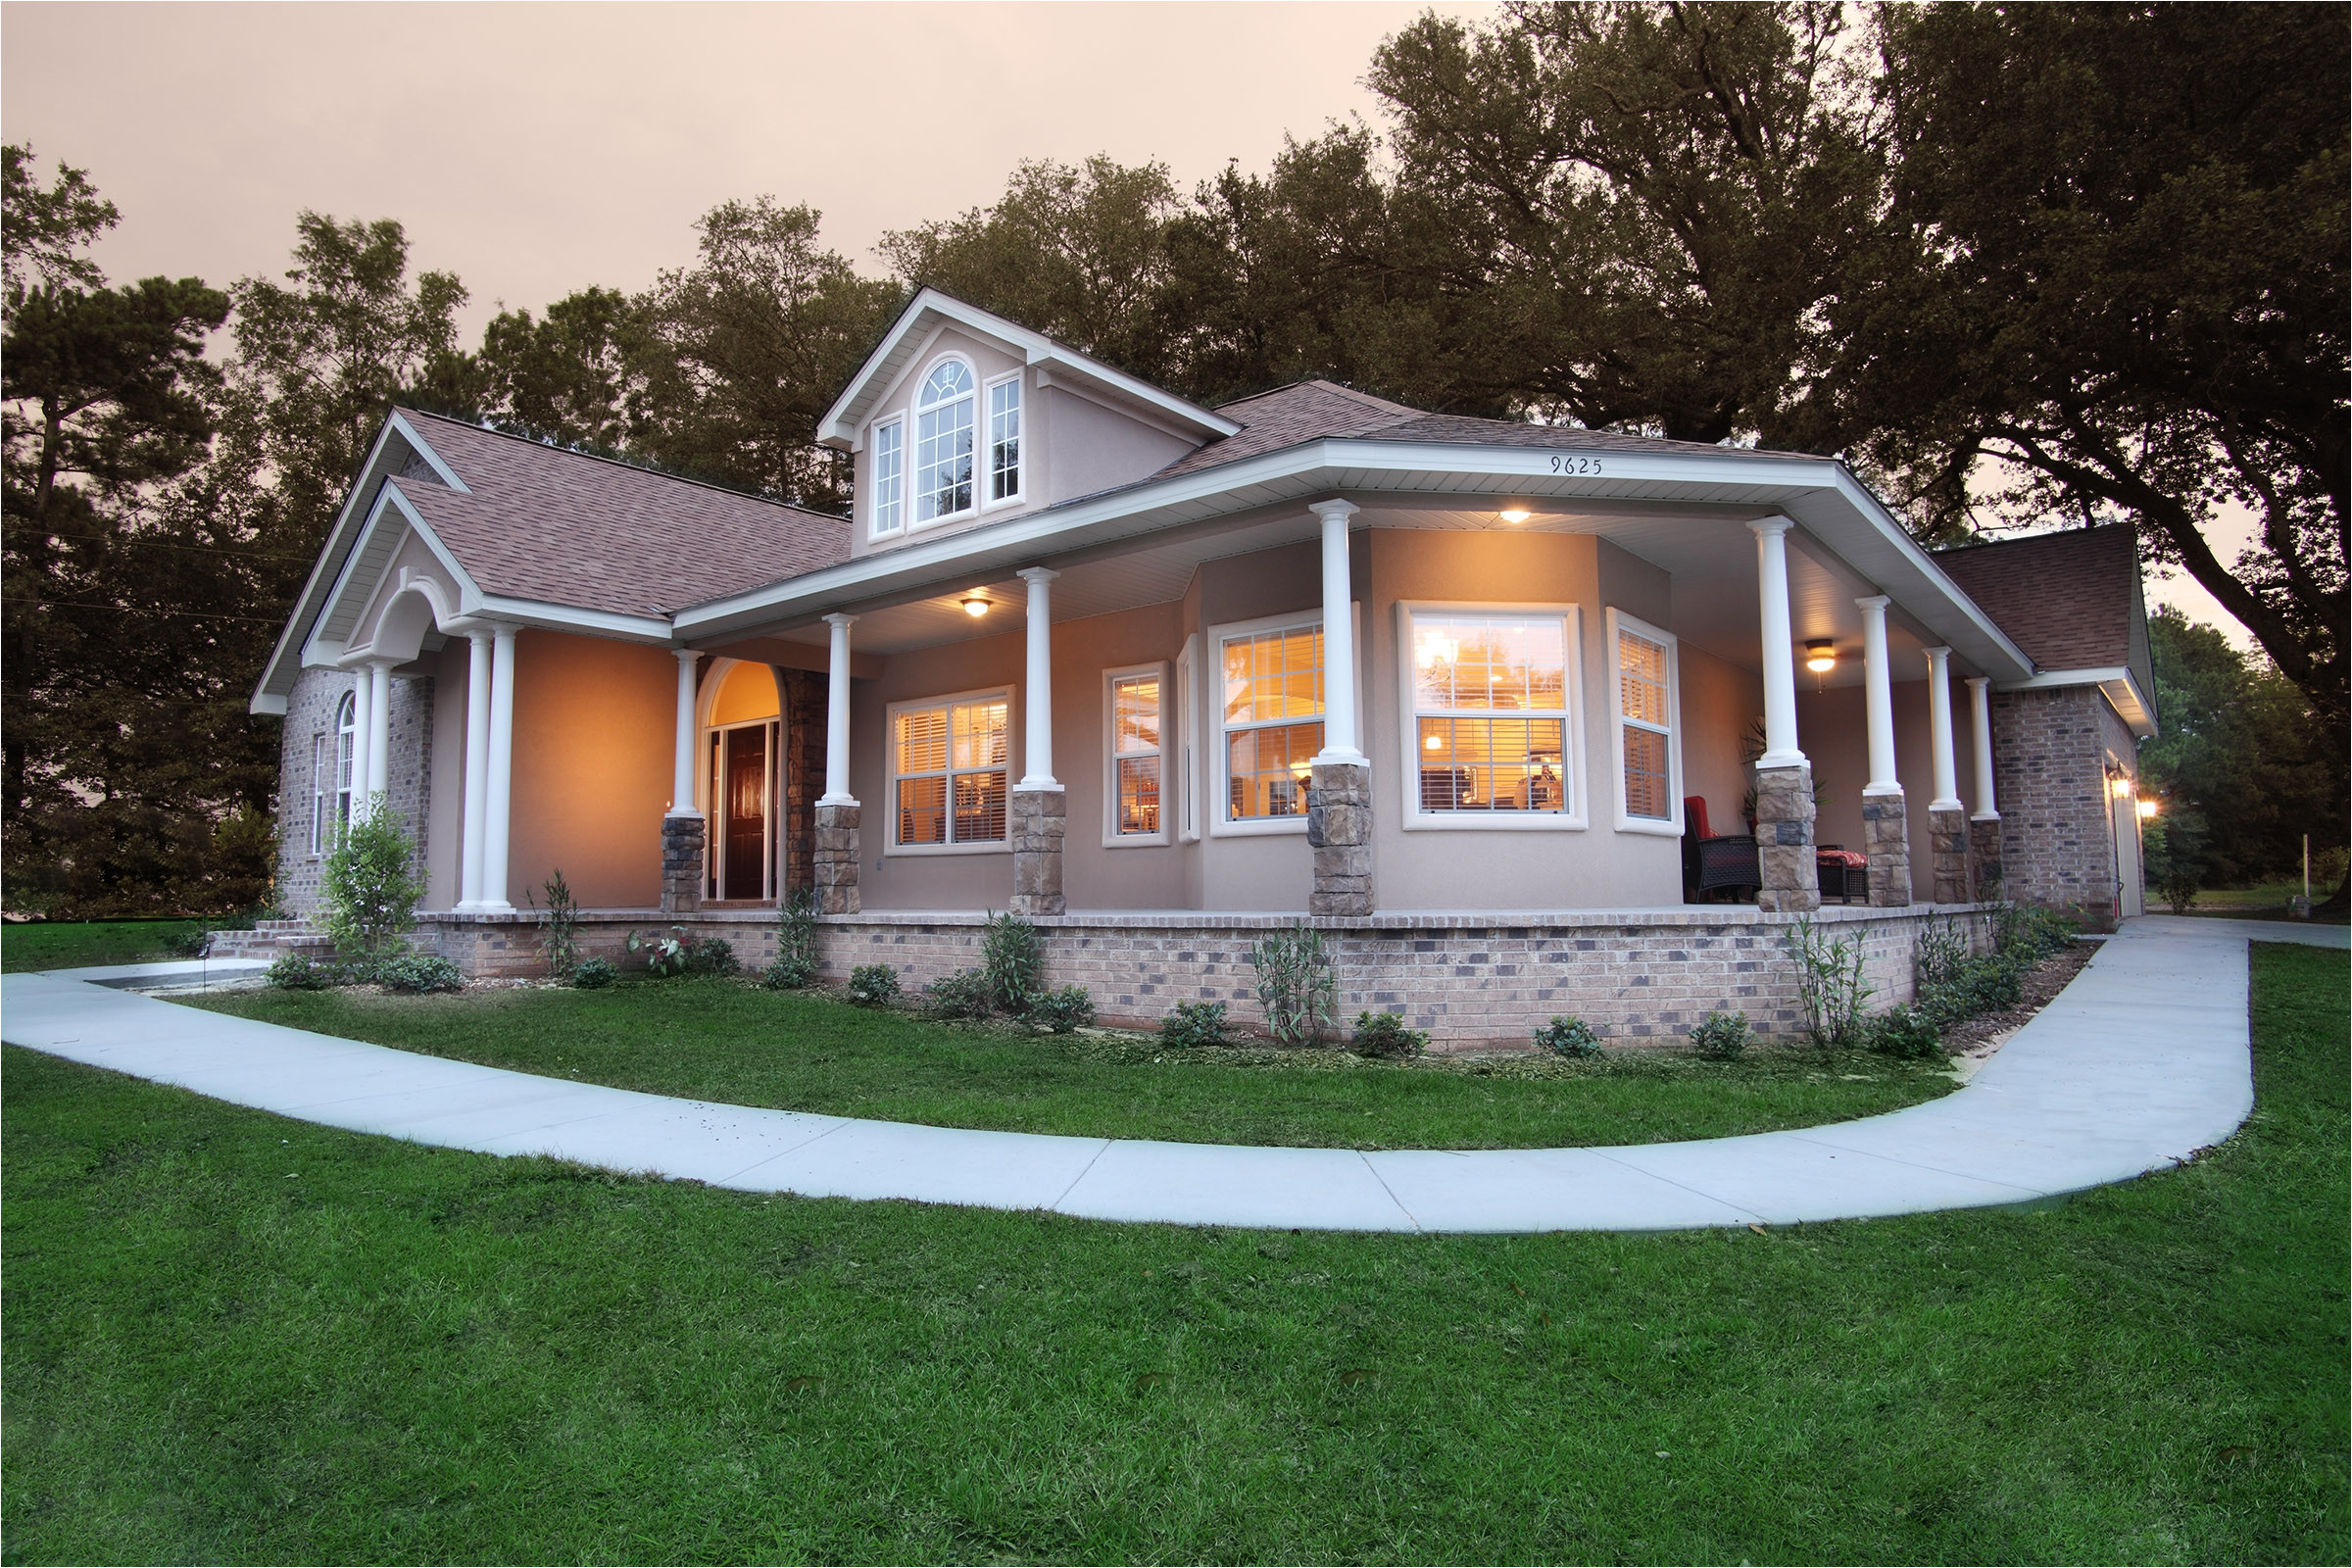 7495 modular home plans with porches